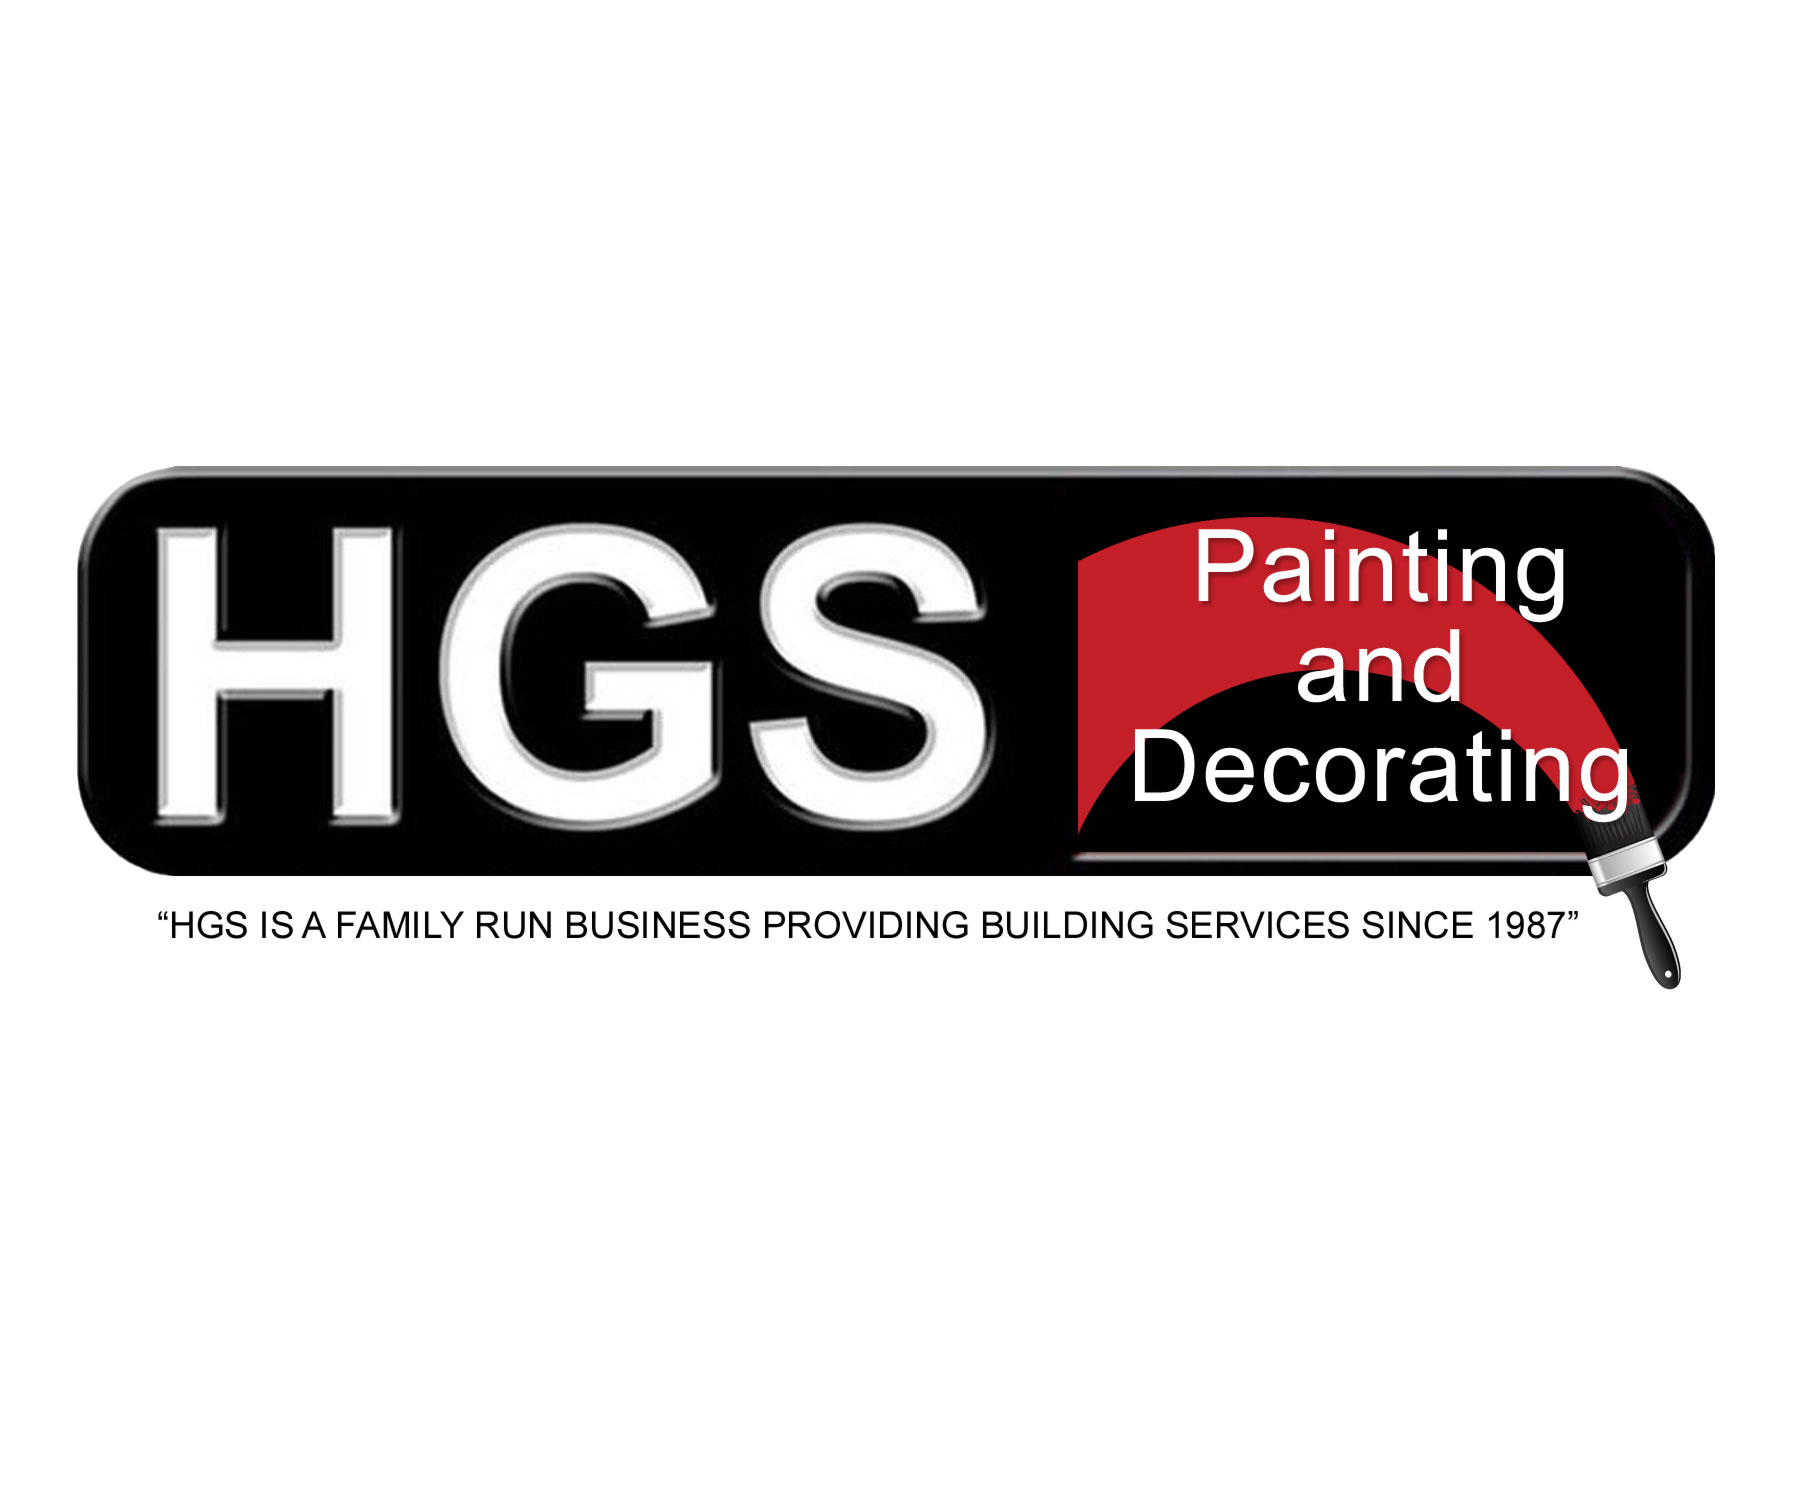 HGS Painting and Decorating logo